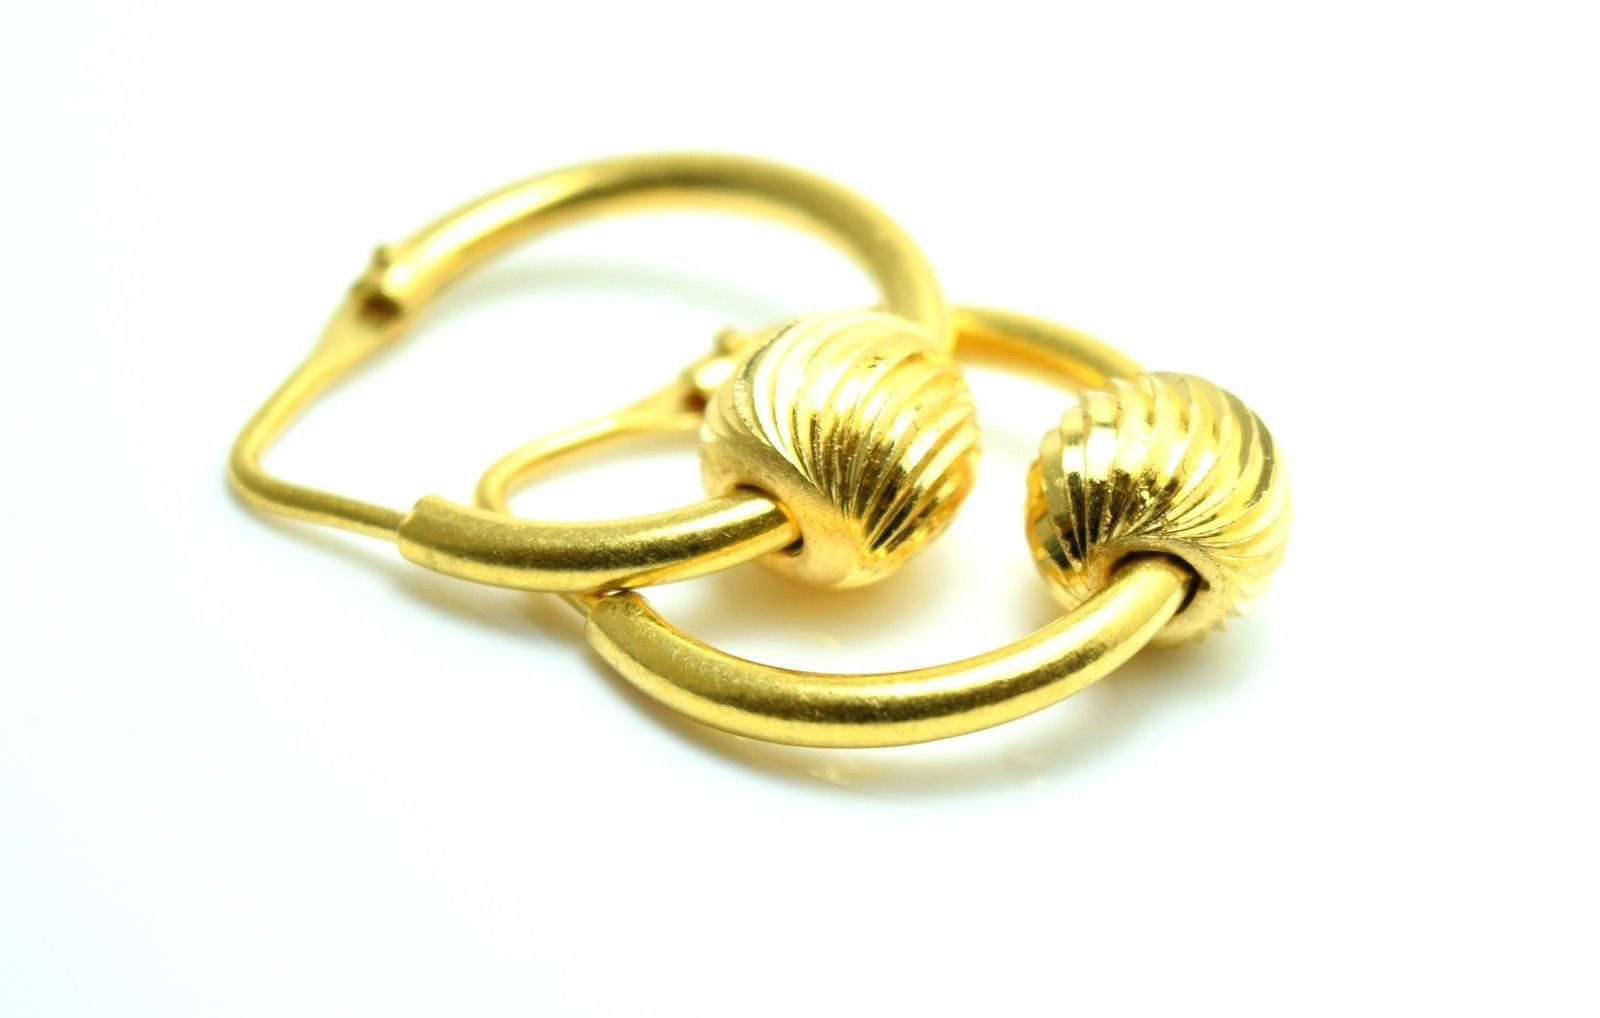 22k Solid Gold Elegant Hoops Bali Earrings With Small Ball E291